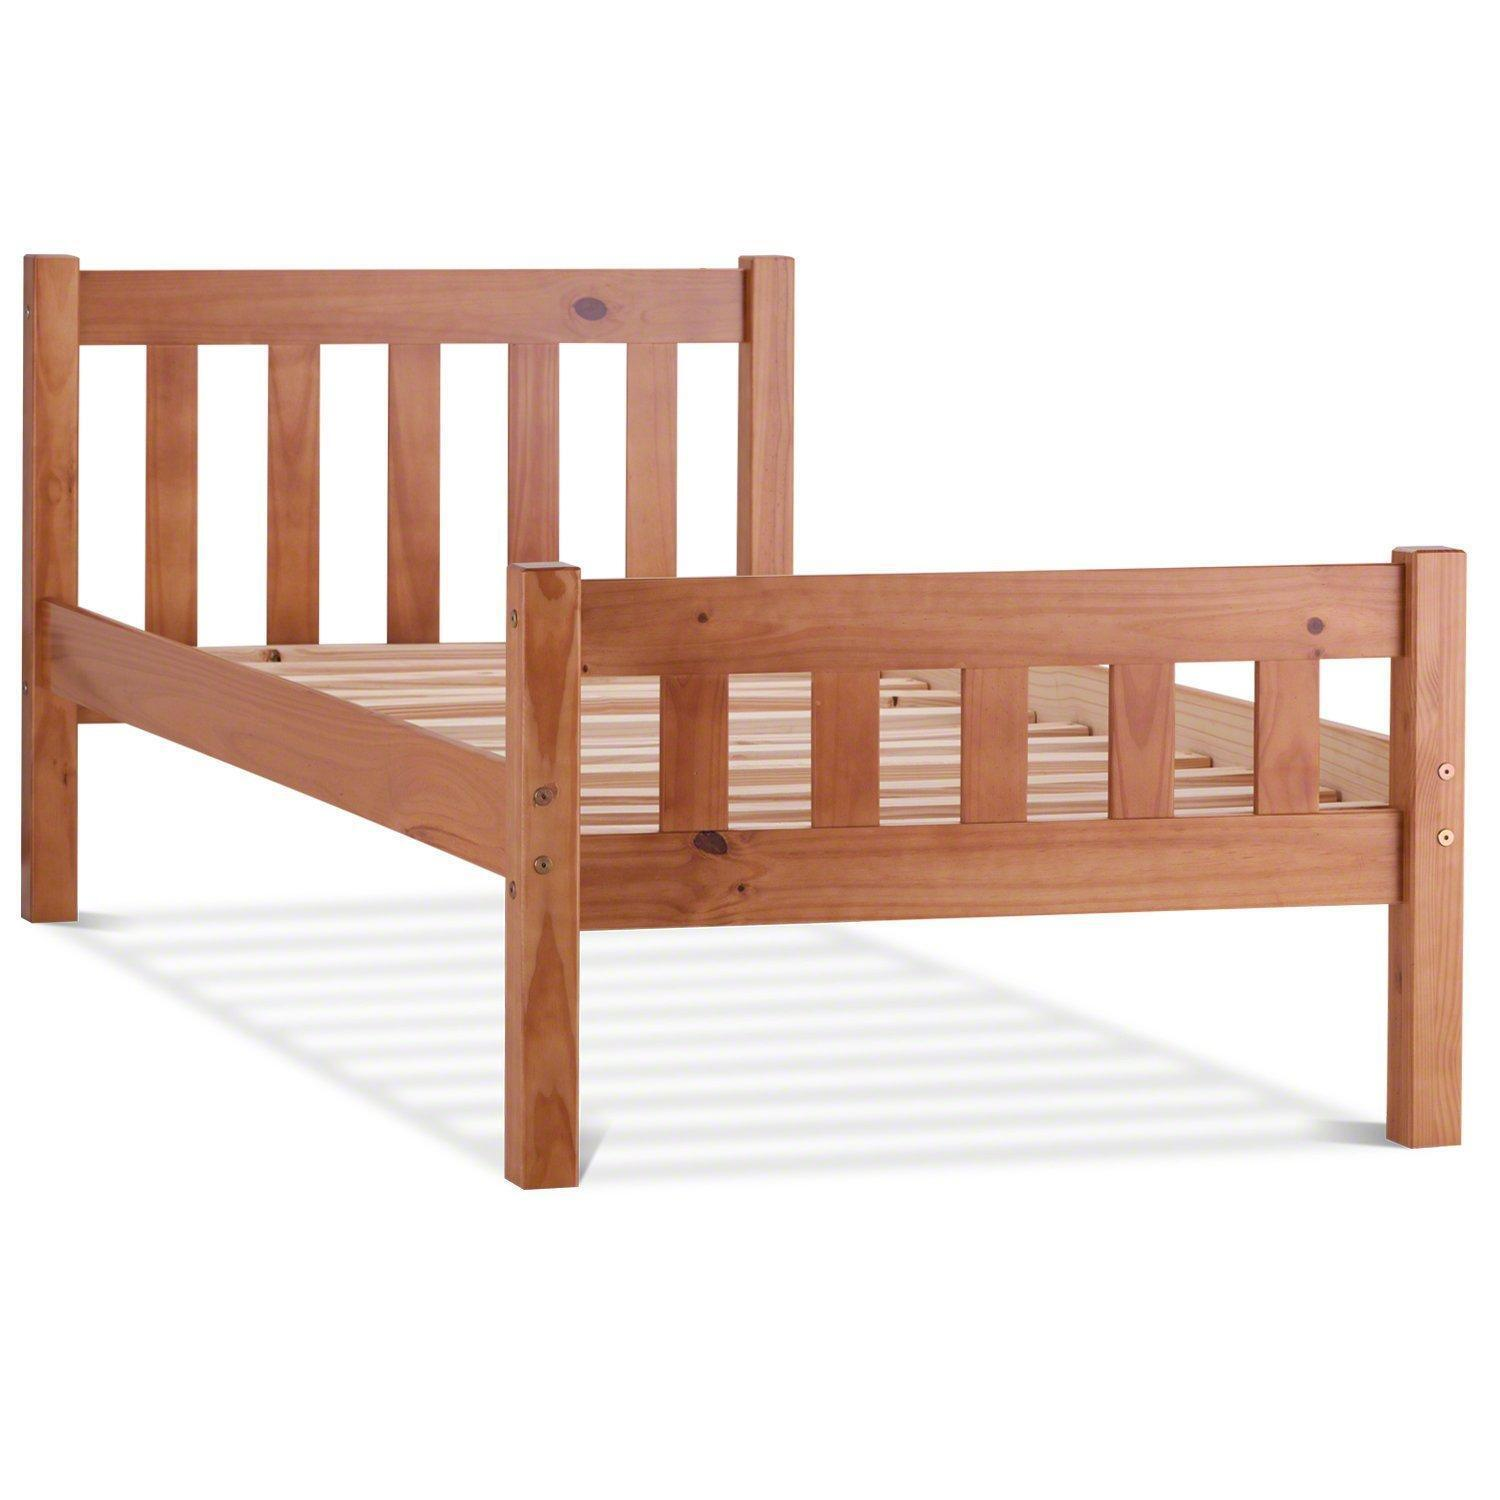 Single bed frame beds bed frames ebay for Wood frame bunk beds